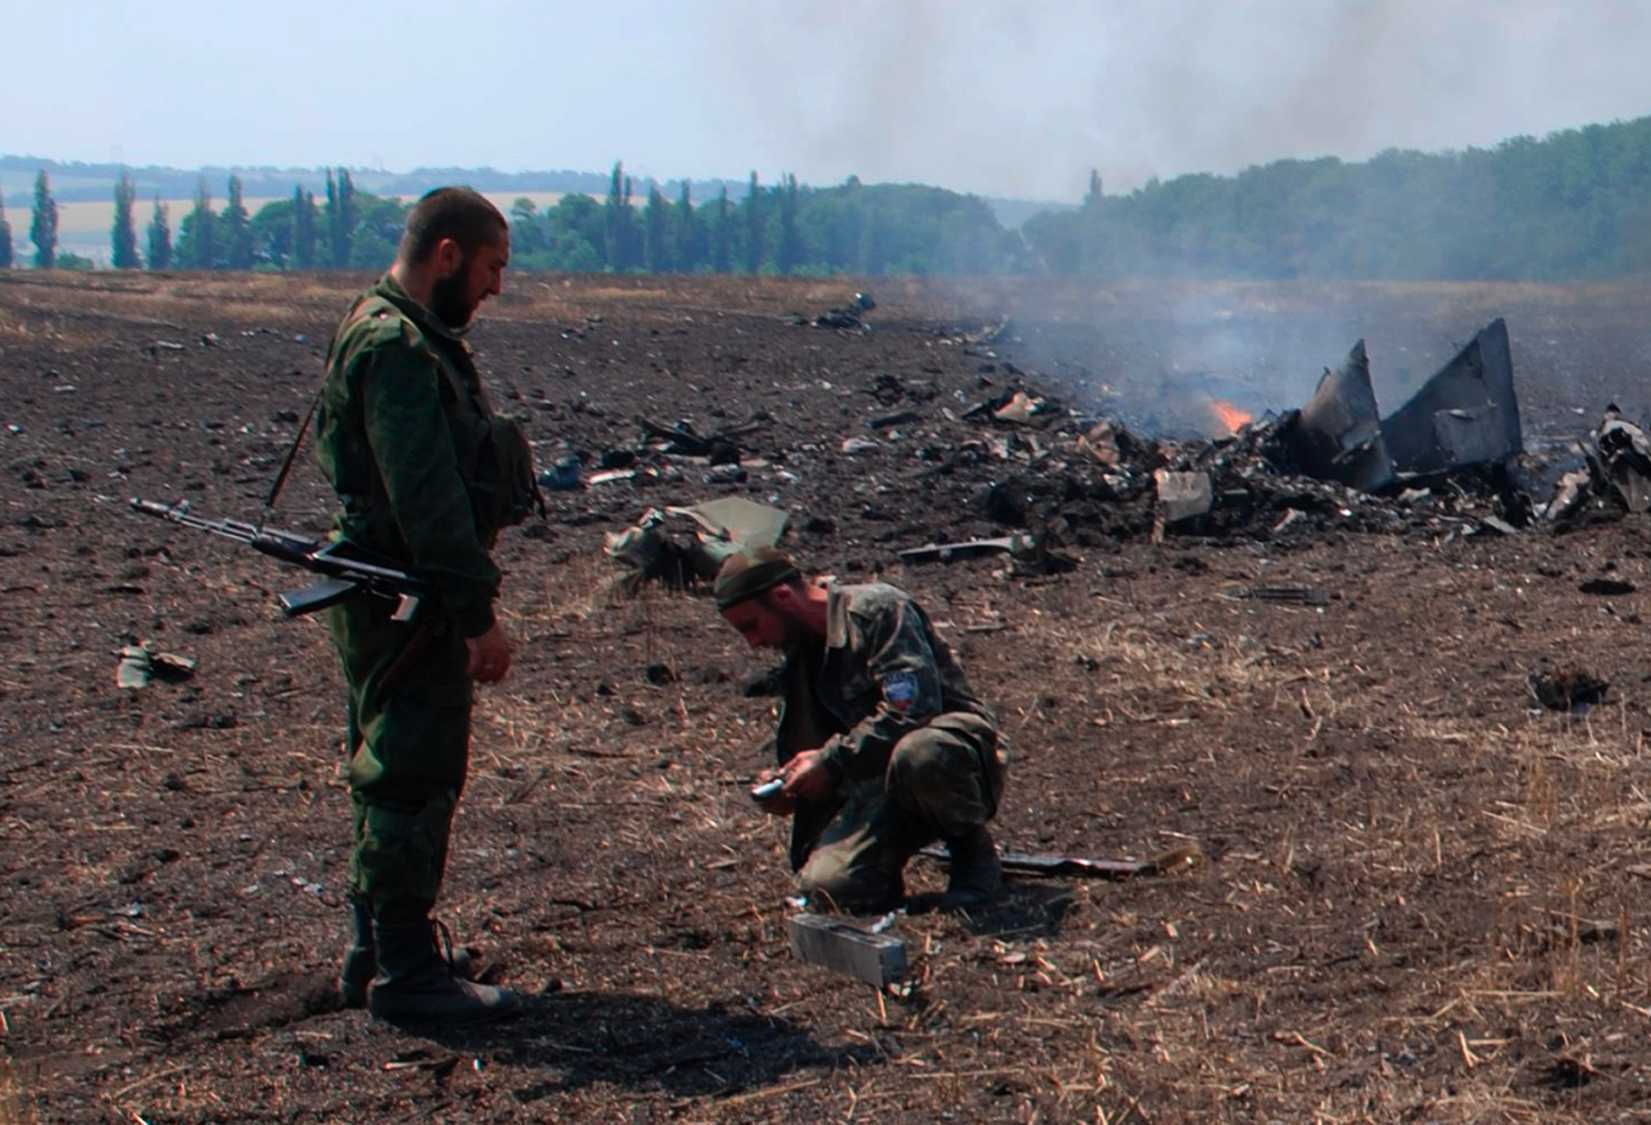 In this framegrab made from a video provided by press service of the rebel Donetsk People's Republic and icorpus.ru, pro-Russians collect parts of the burning debris of a Ukrainian military fighter jet, shot down at Savur Mogila, eastern Ukraine, Wednesday, July 23, 2014.